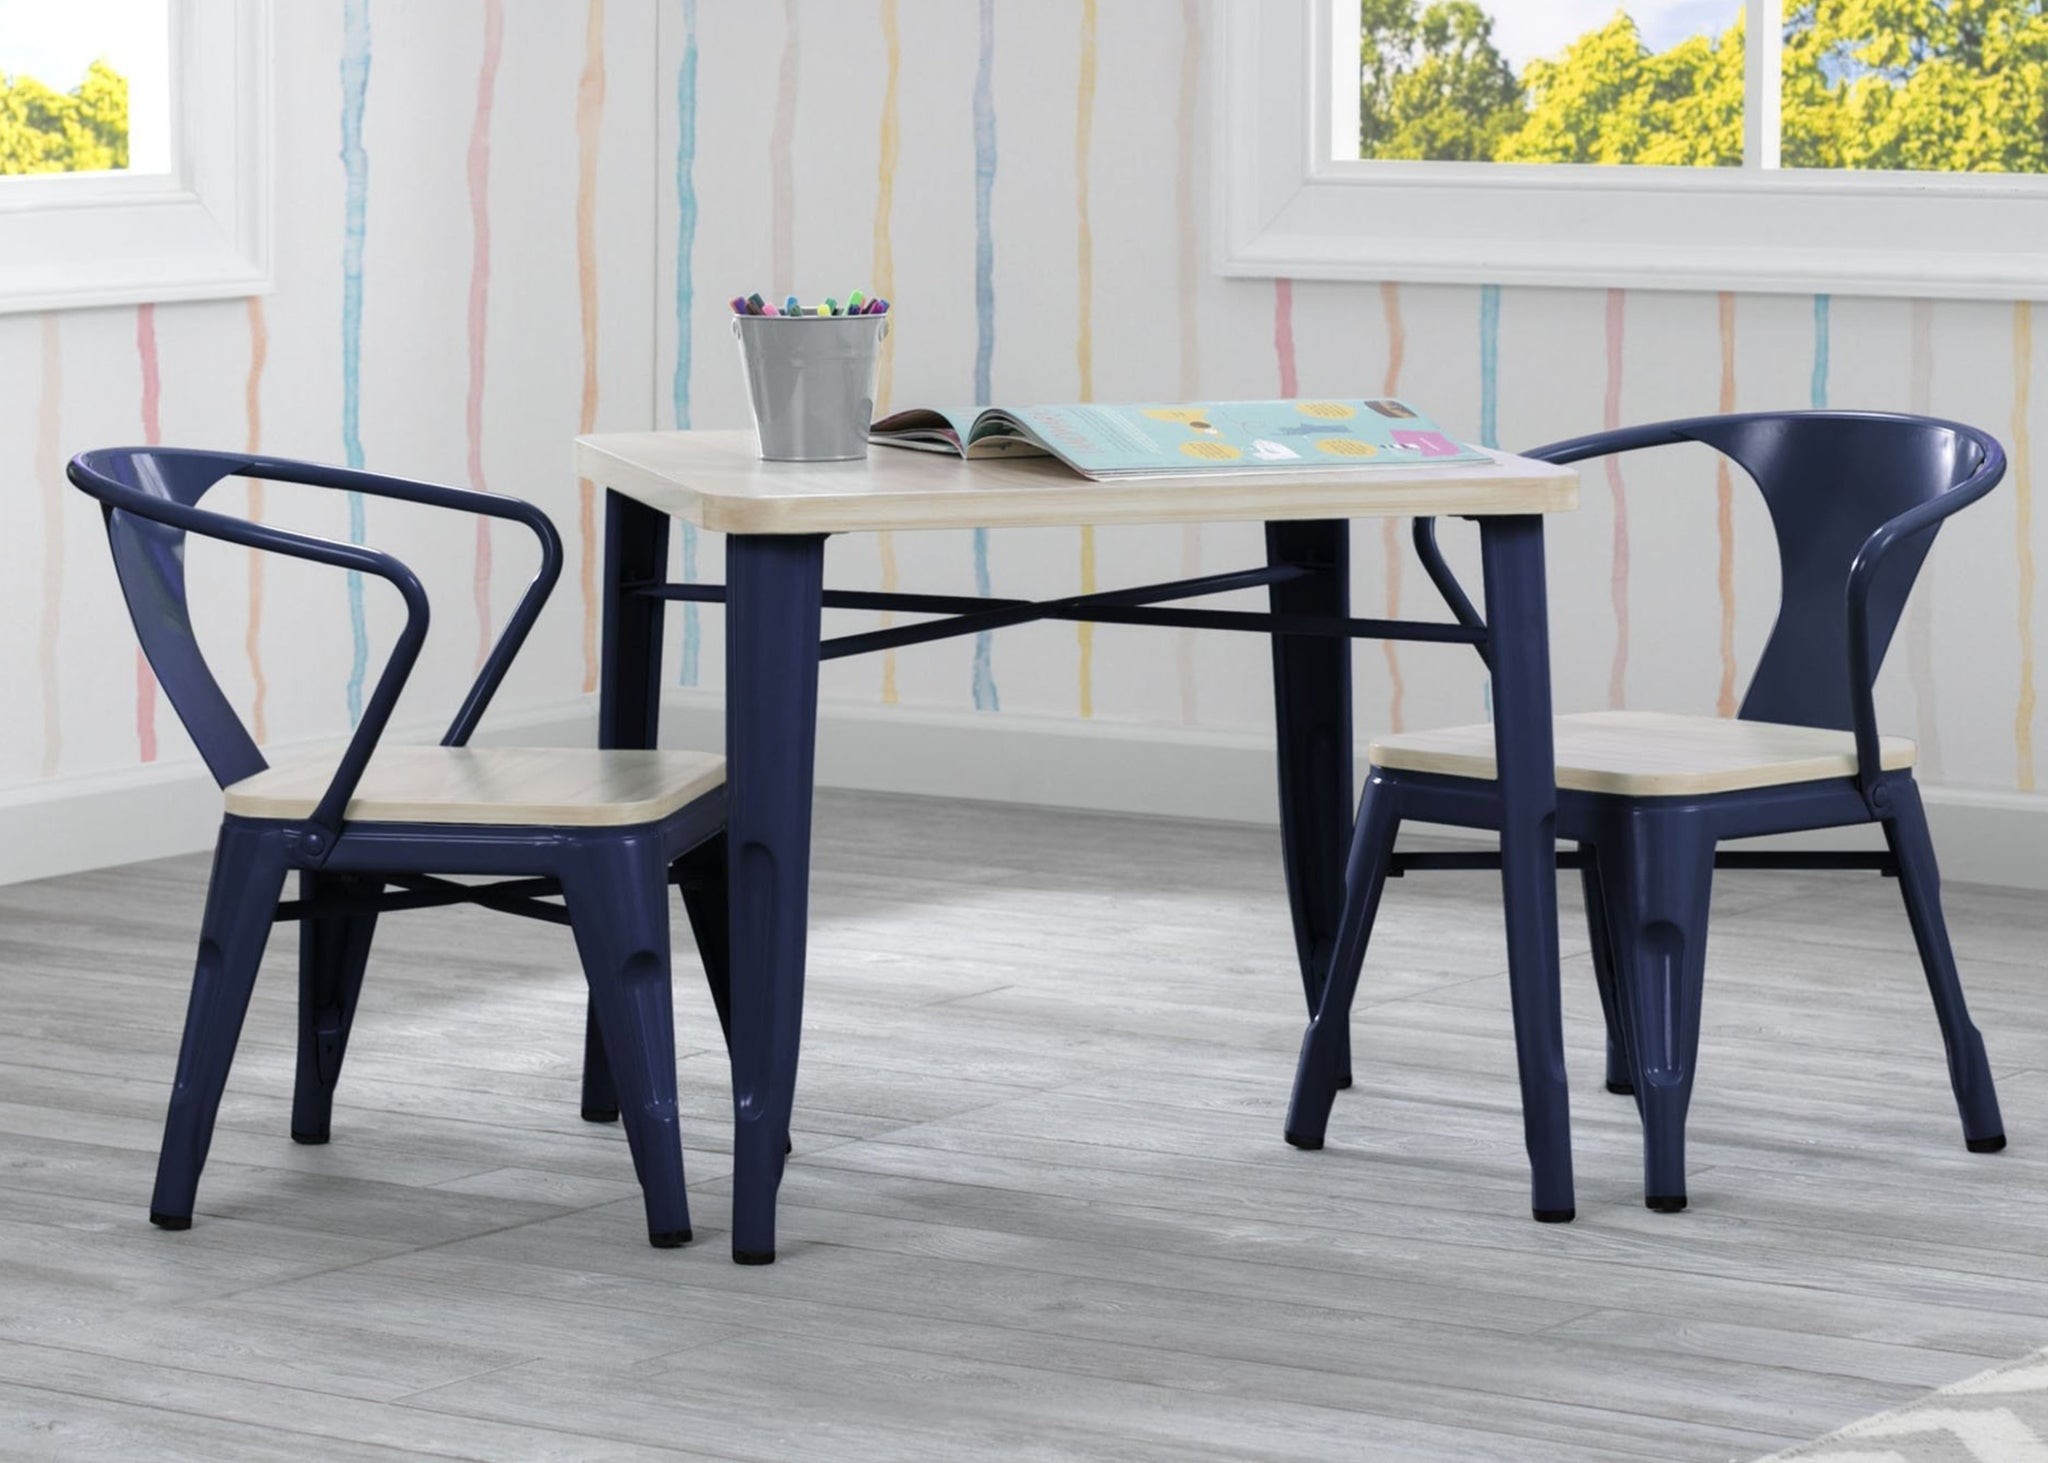 Bistro Kids Play Table